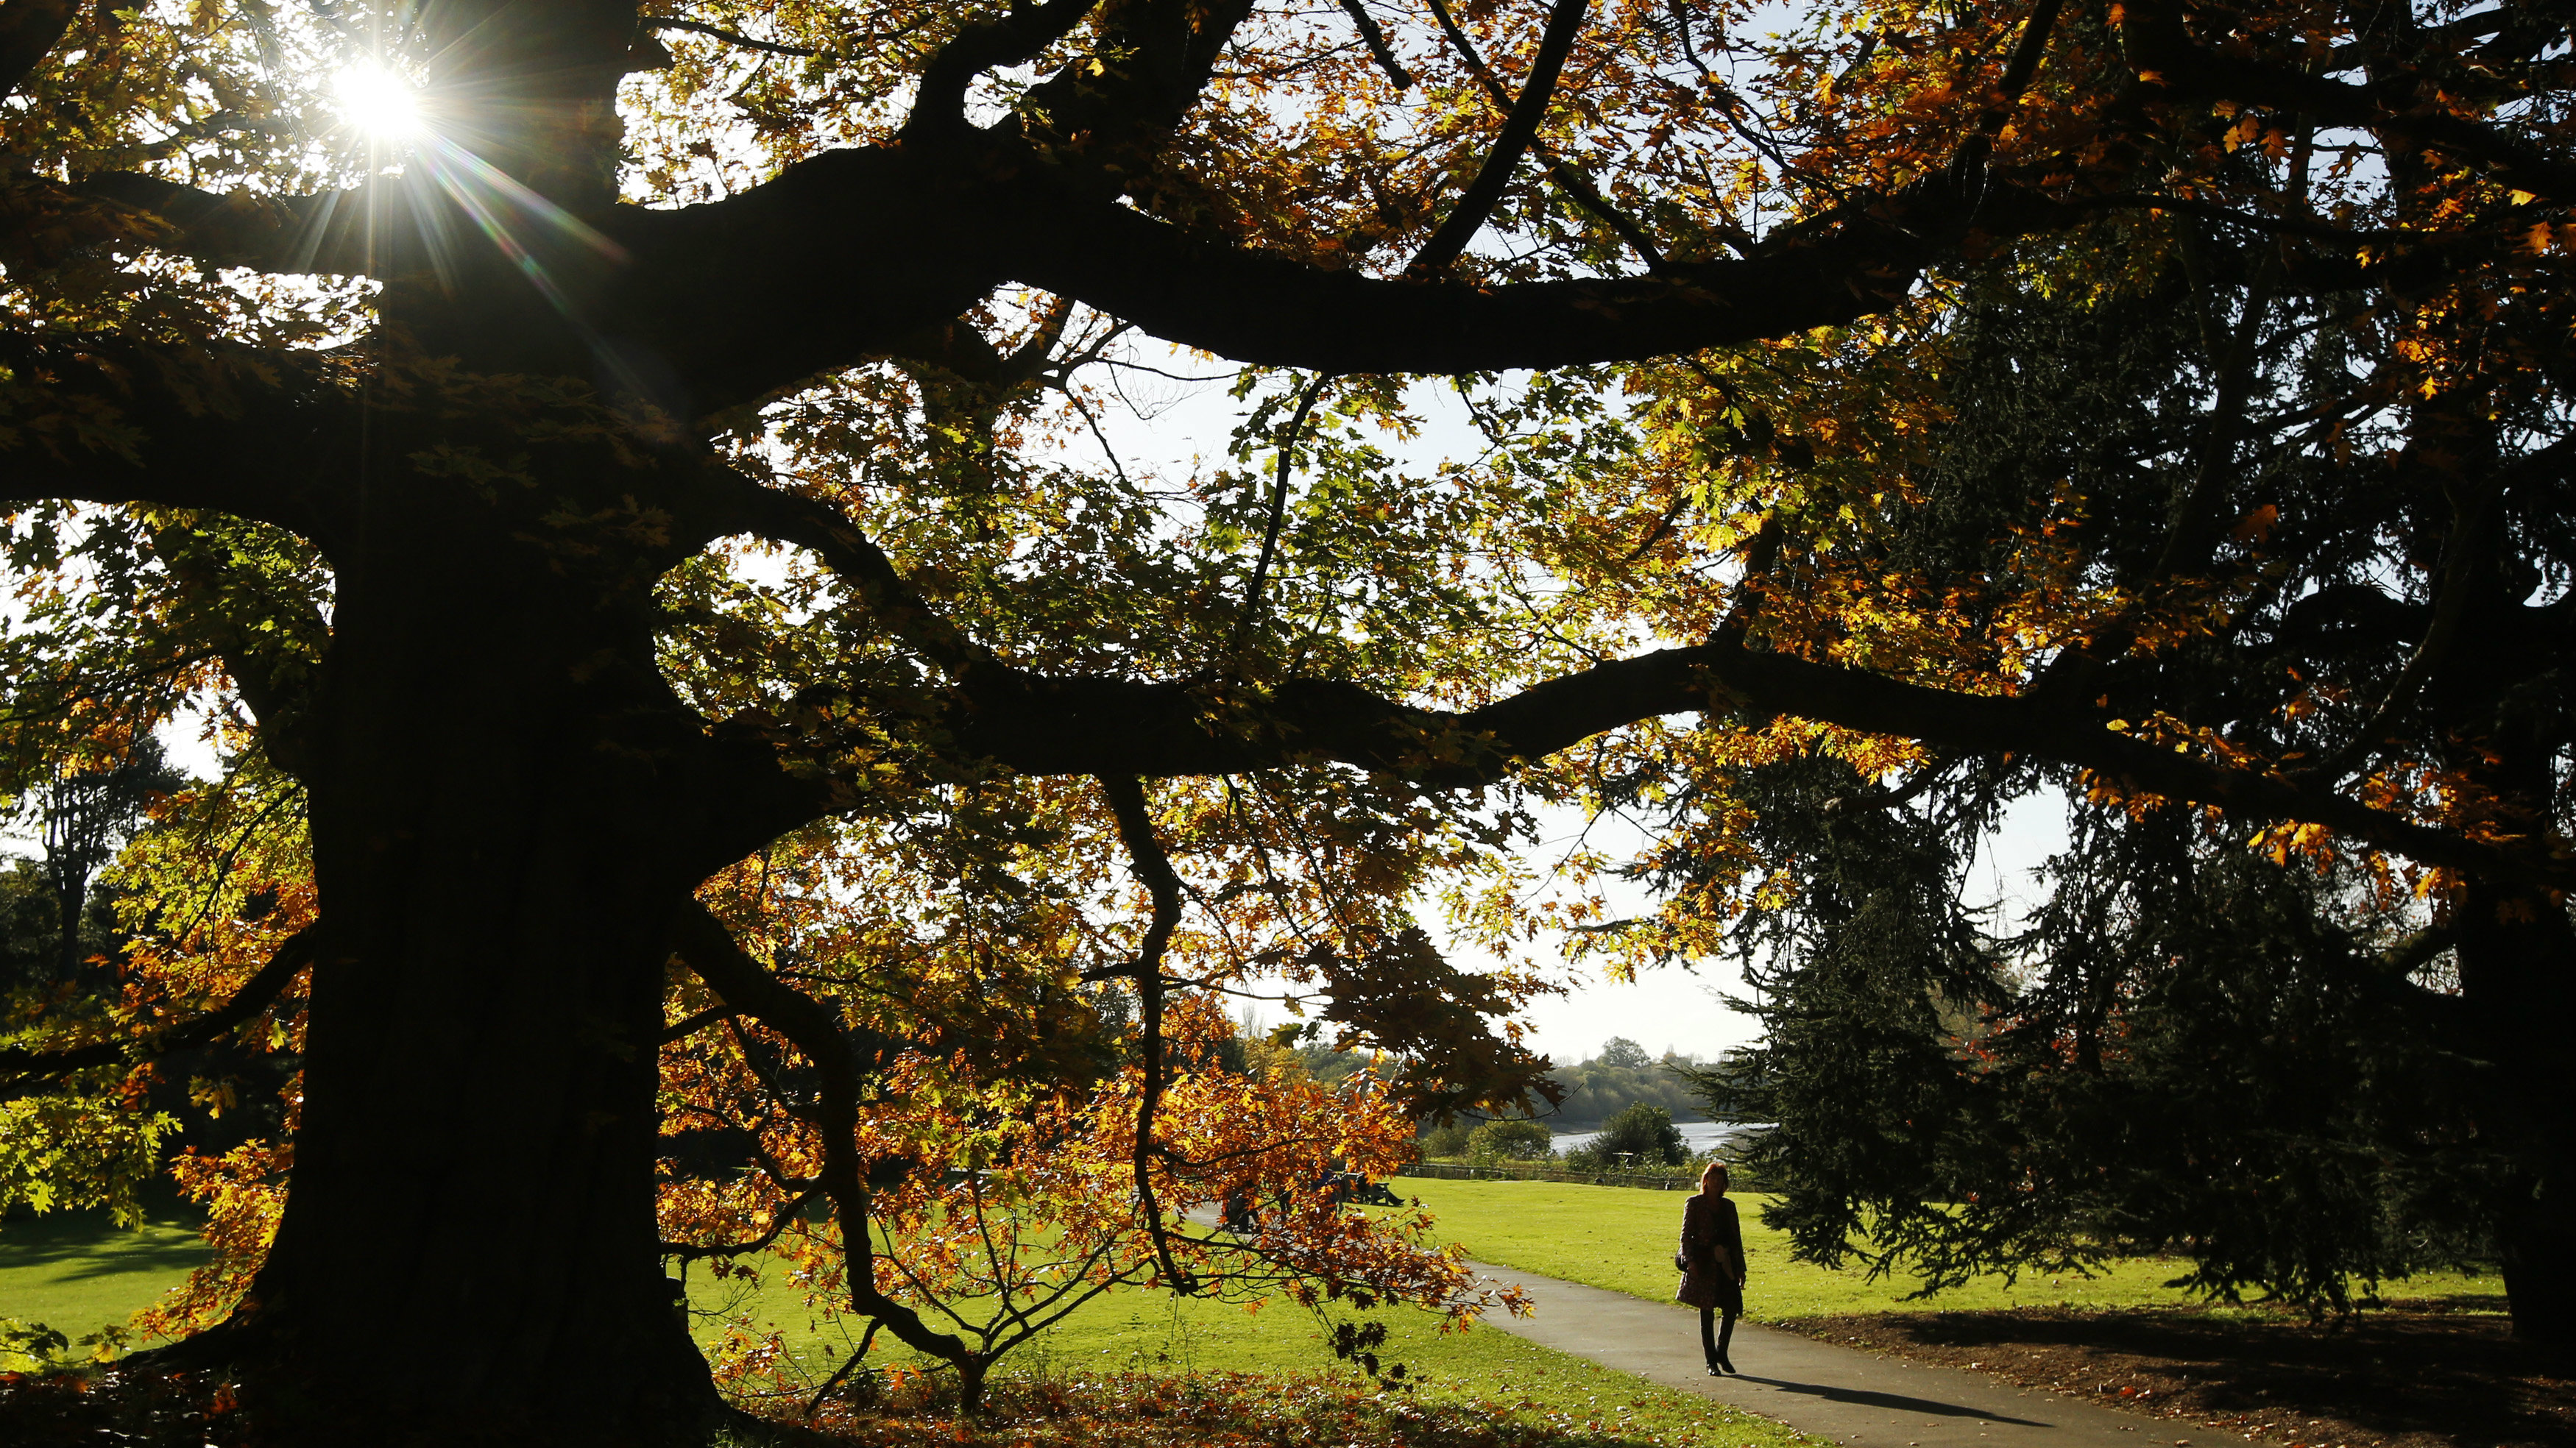 A woman walks near trees with leaves in autumn colours at Kew Gardens in west London October 27, 2014.